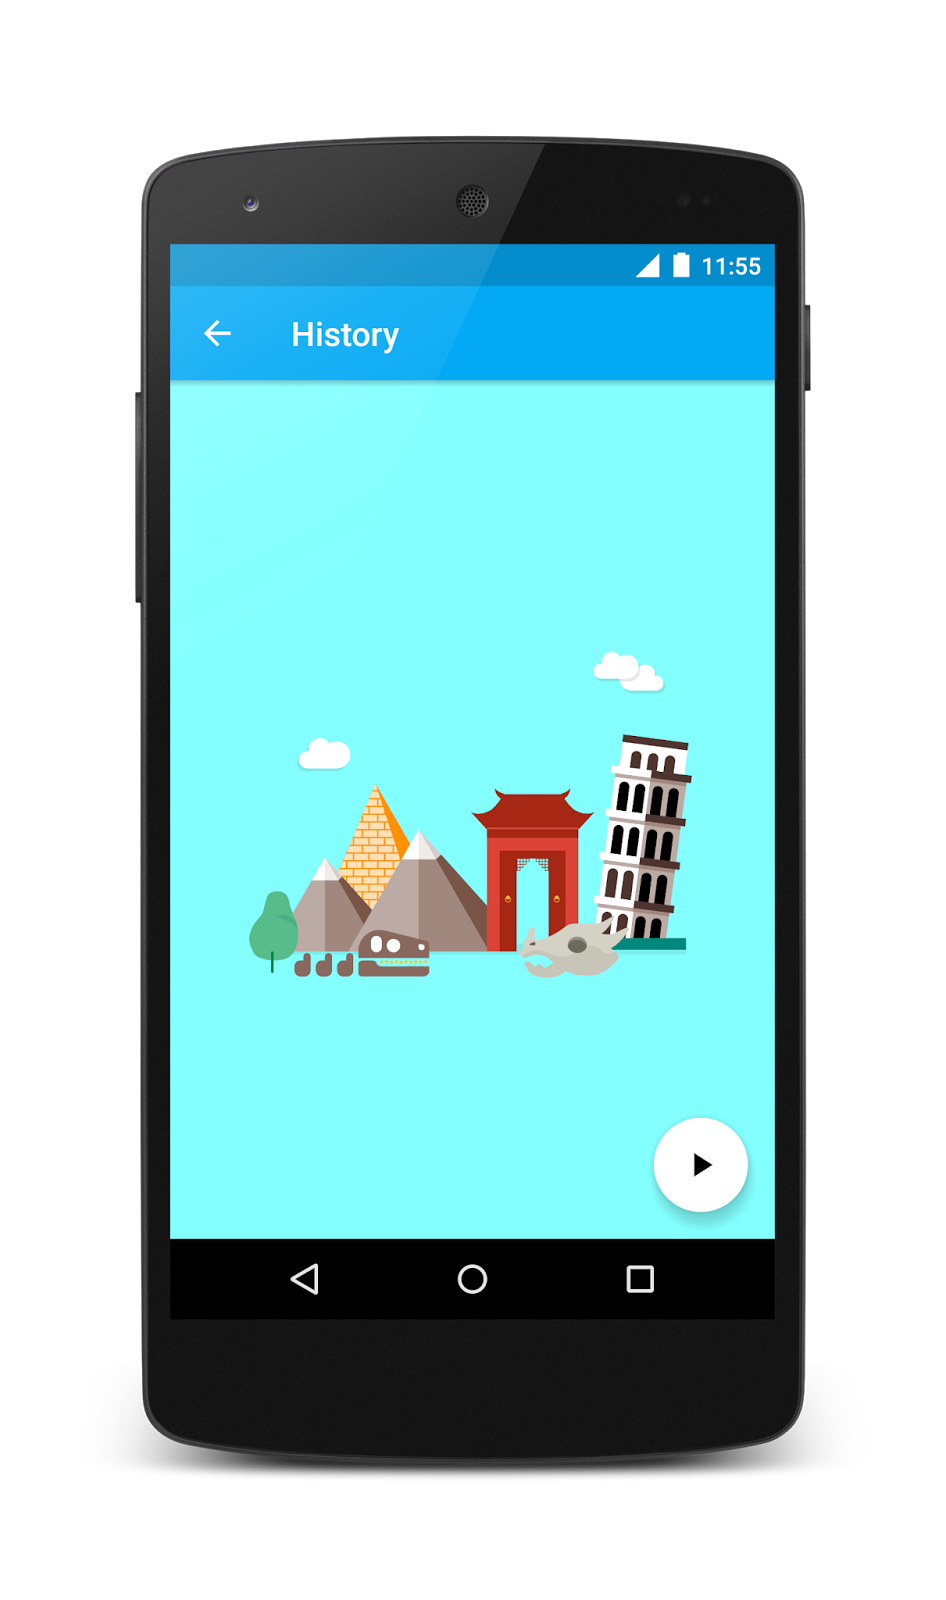 Android Developers Blog: More Material Design with Topeka